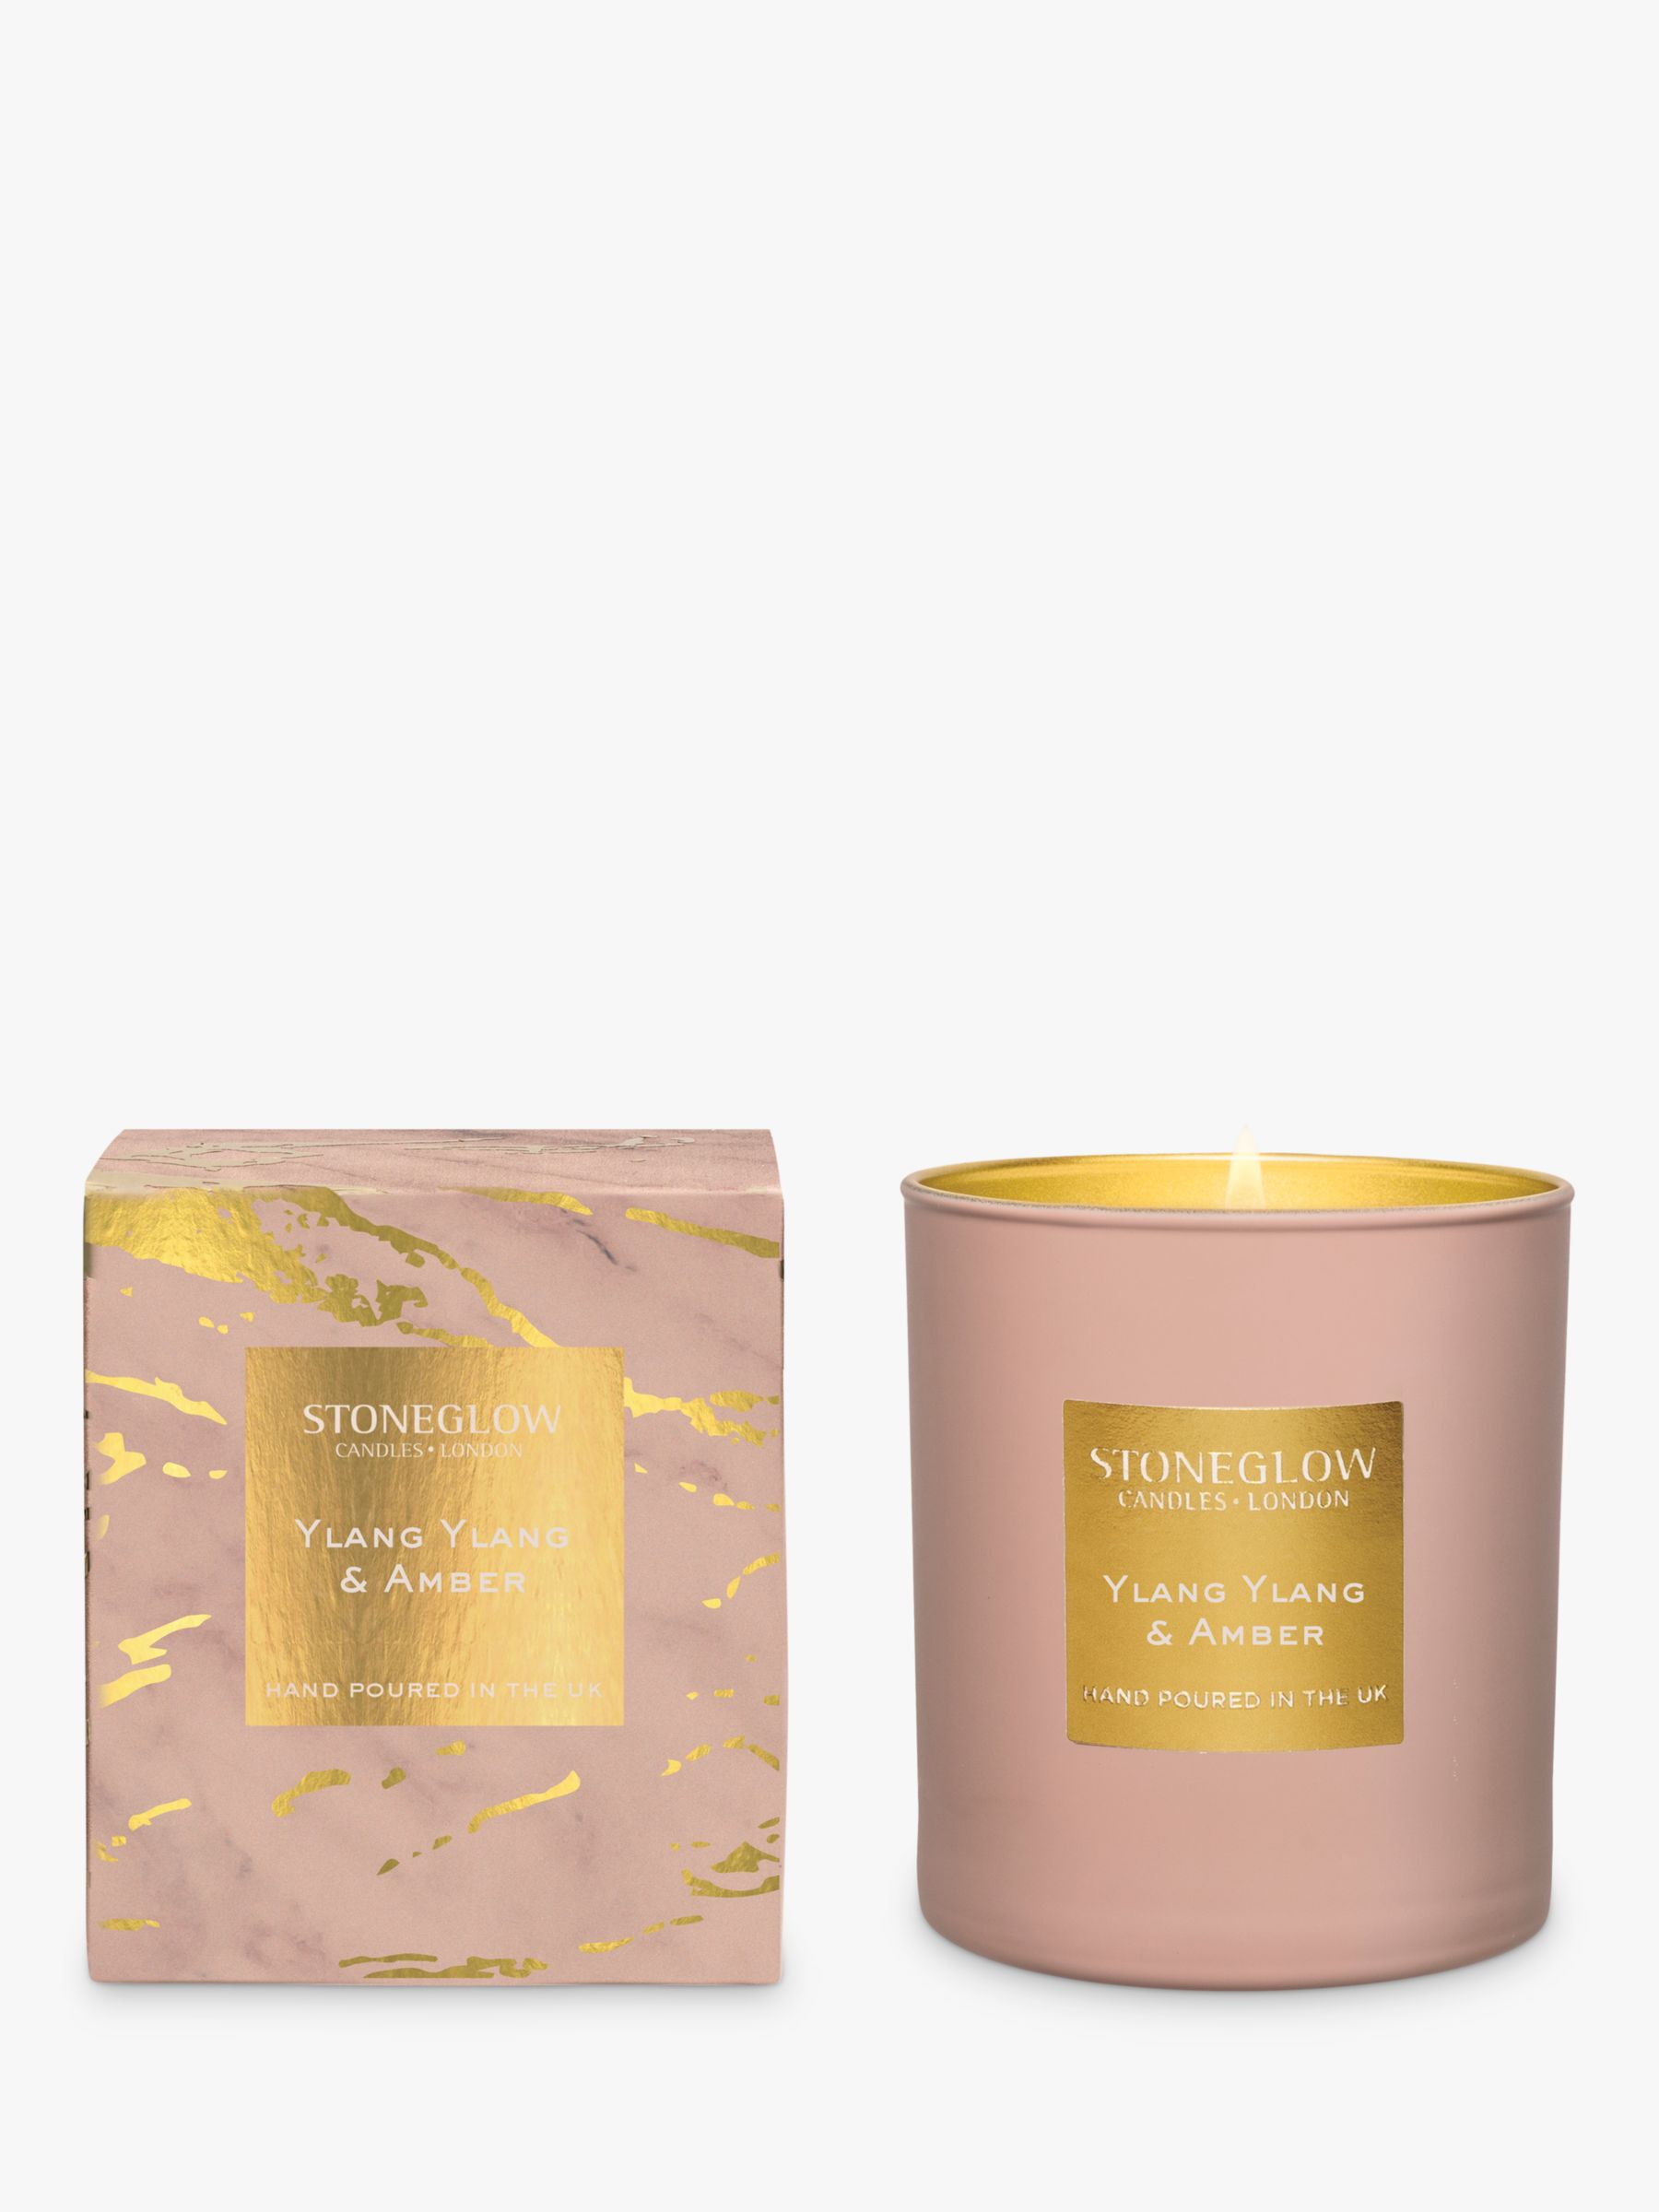 Stoneglow Stoneglow Luna Ylang Ylang & Amber Scented Candle, 220g